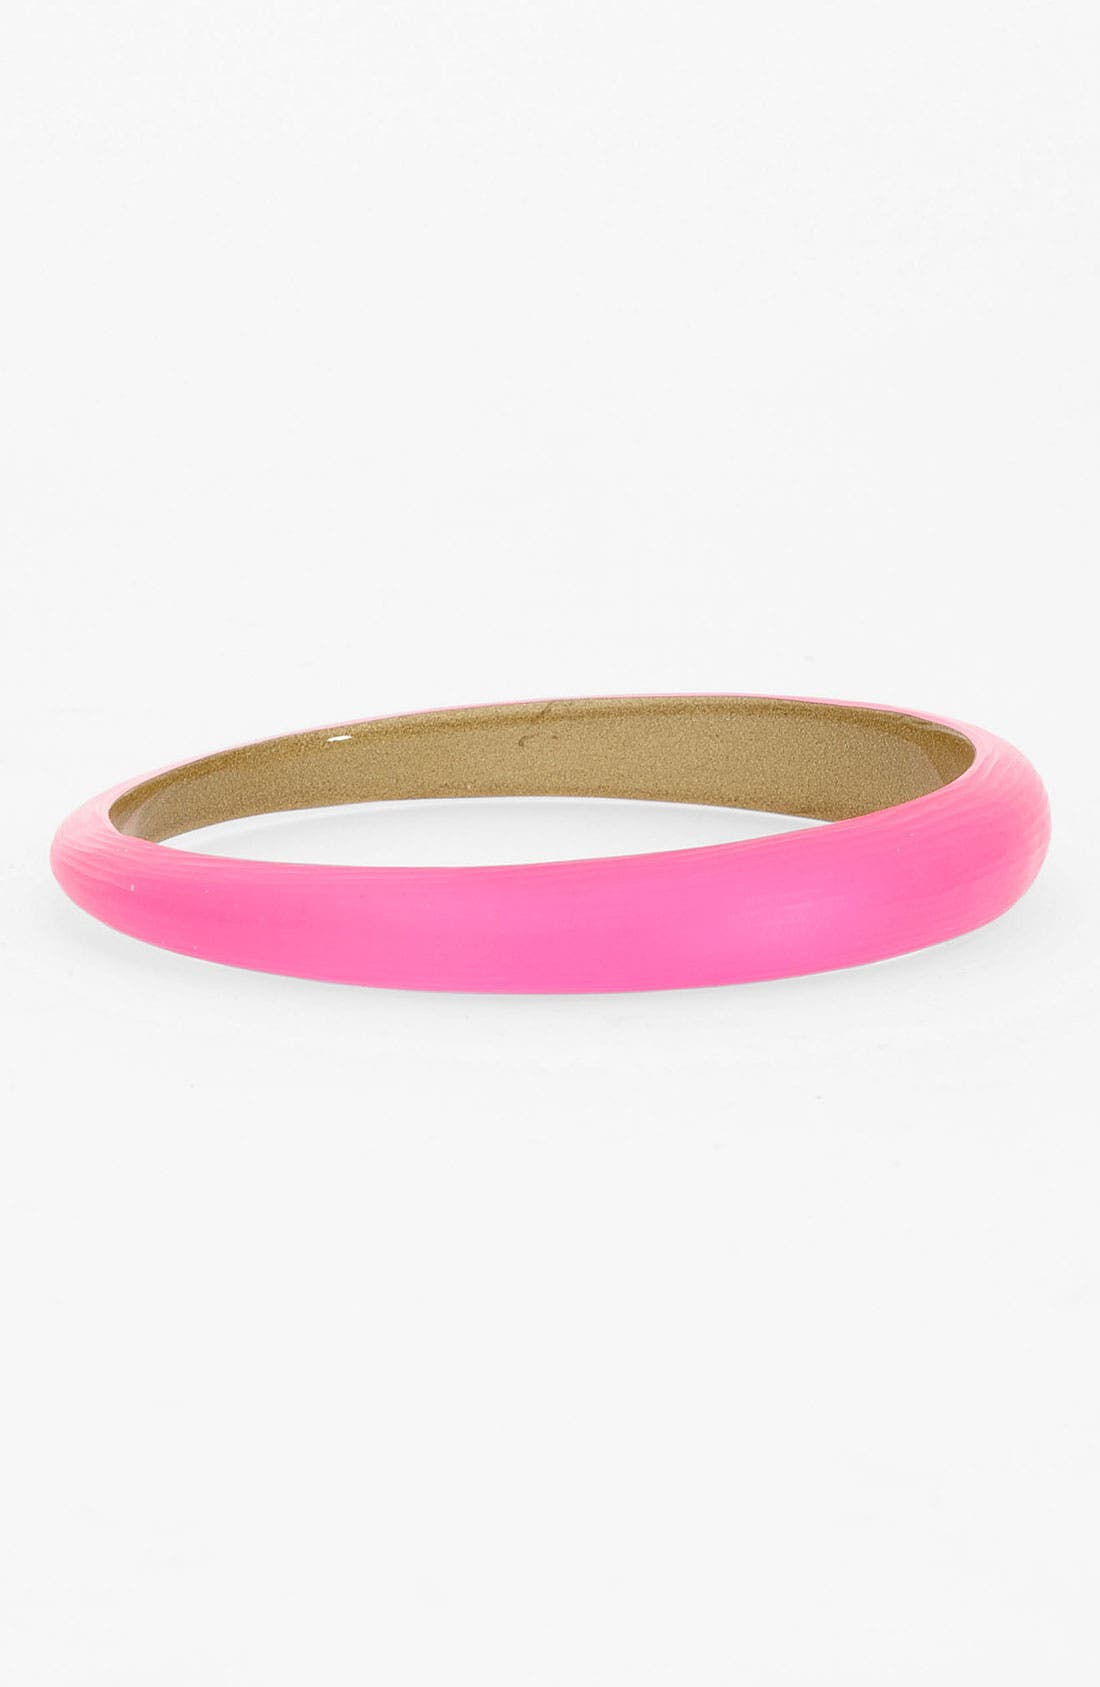 Main Image - Alexis Bittar Skinny Tapered Bangle